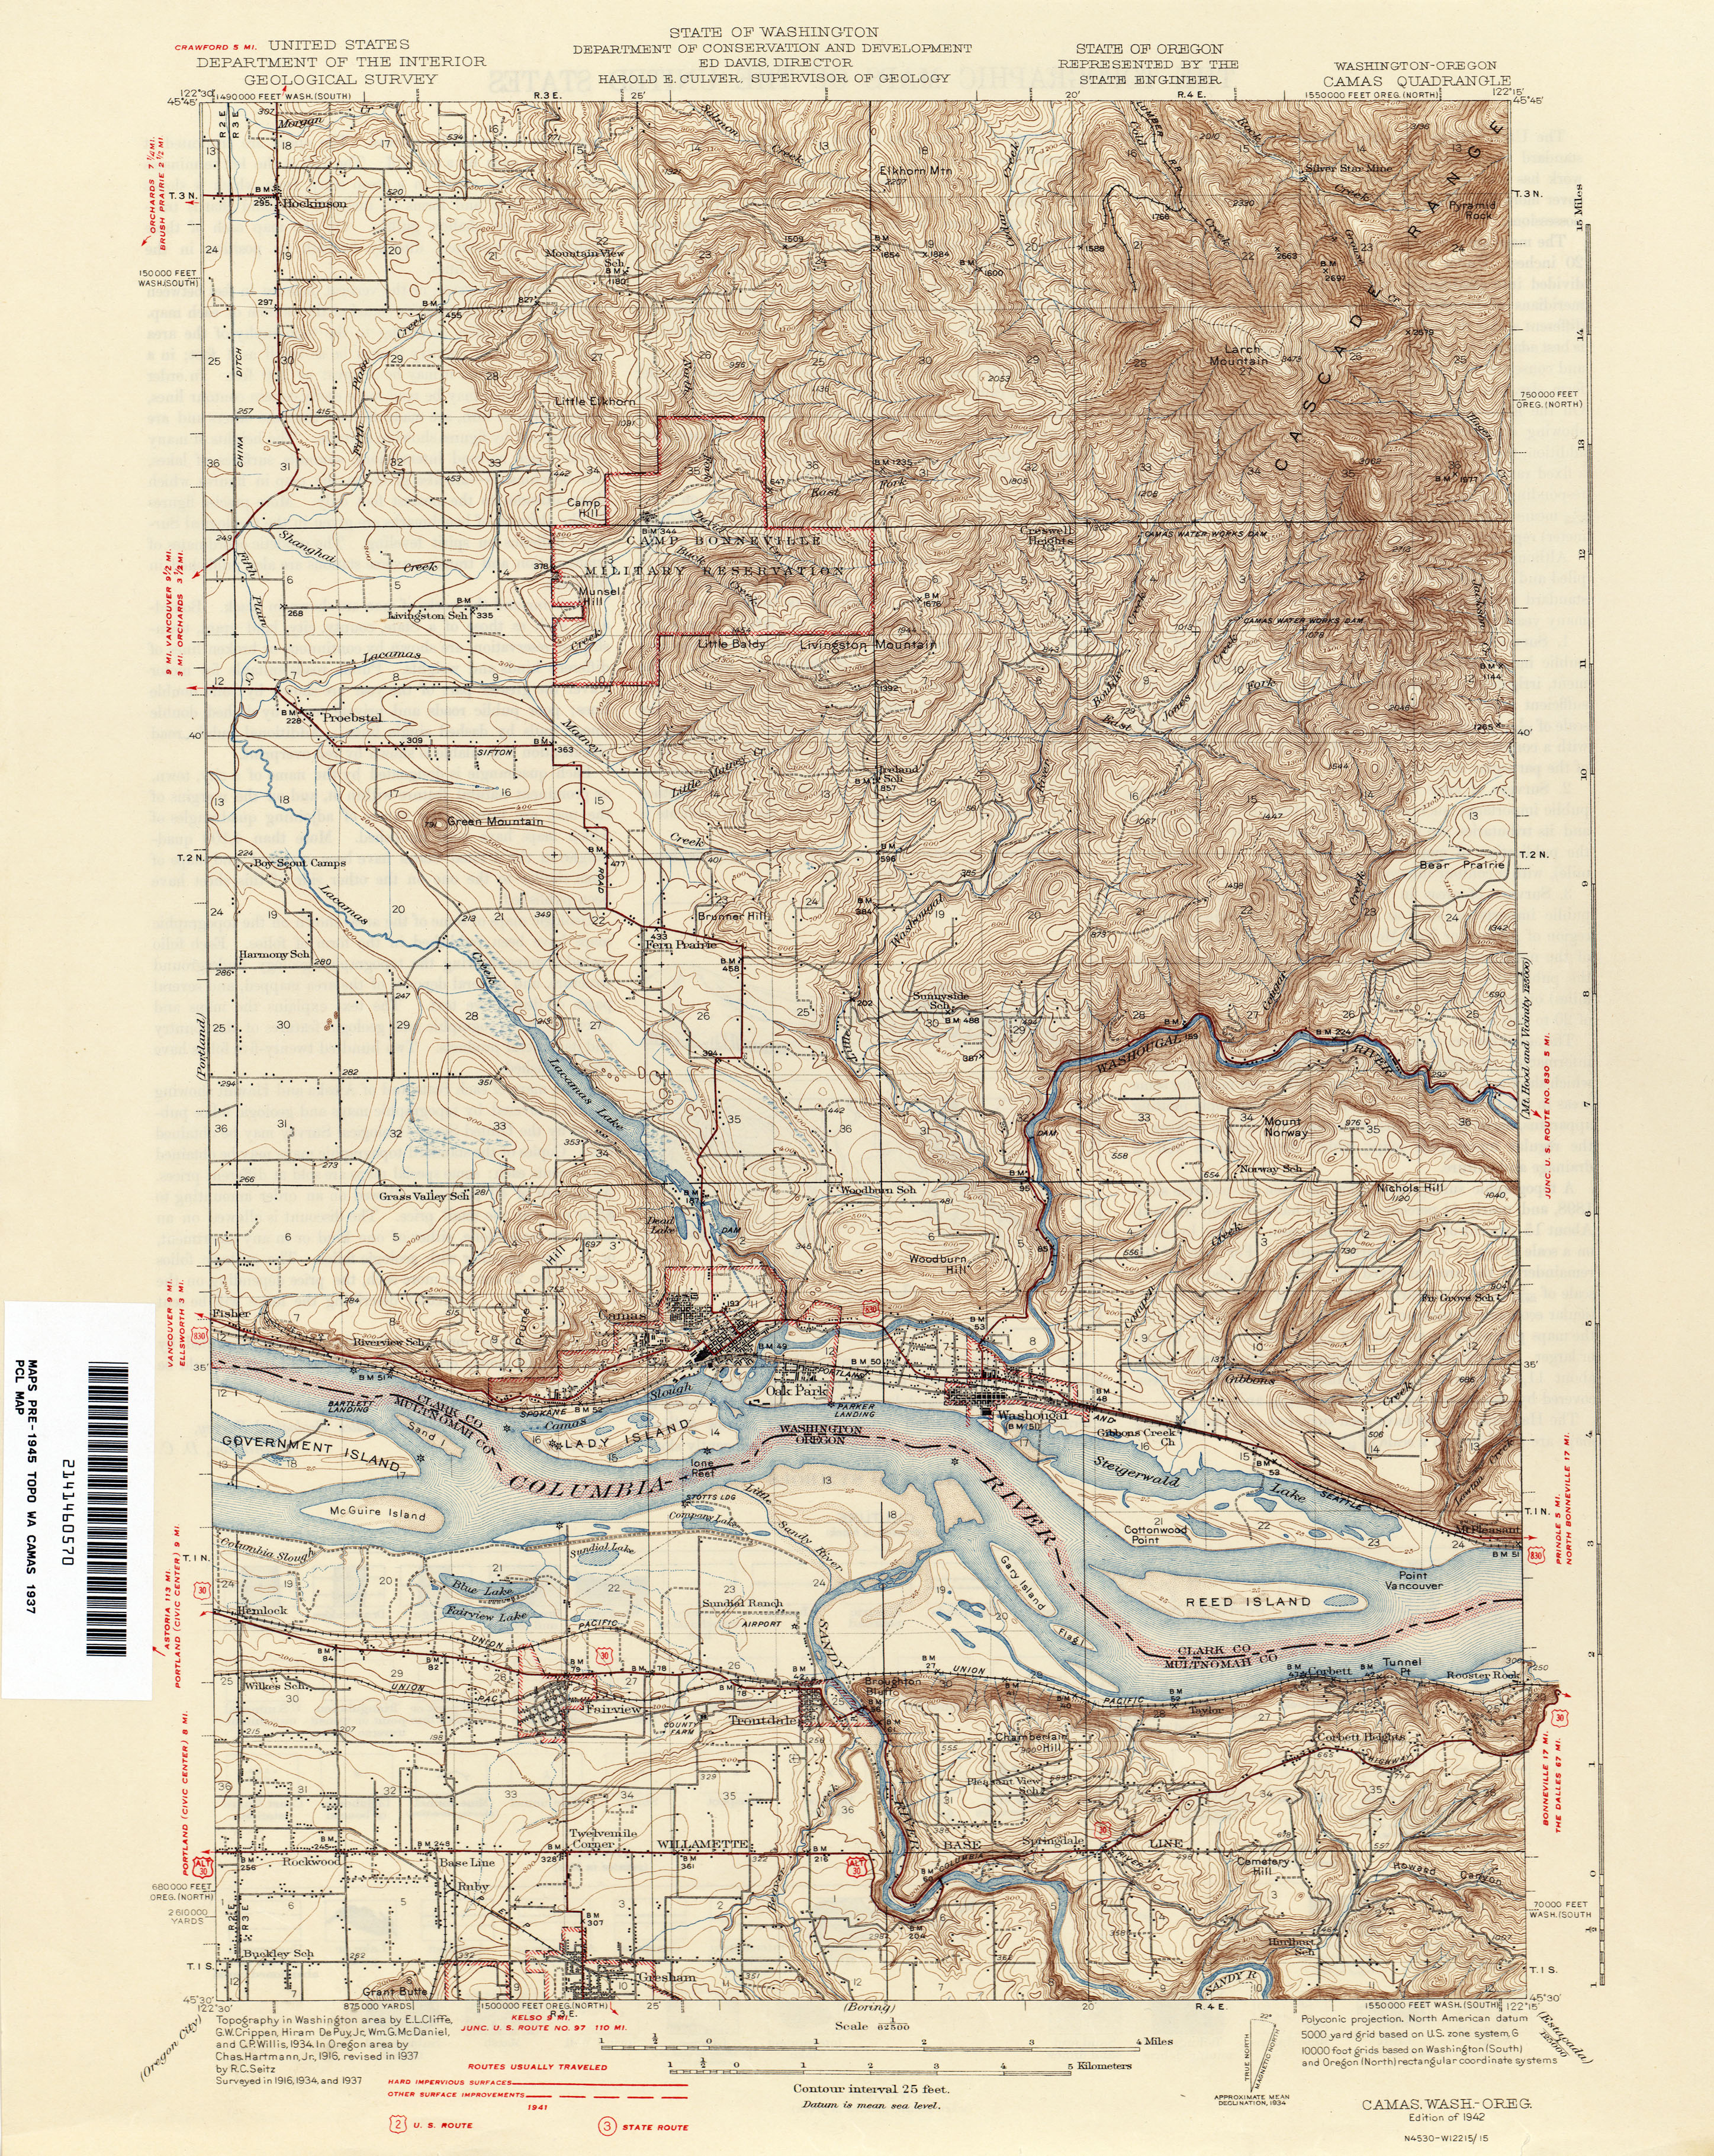 Lewis County Washington Map.Washington Historical Topographic Maps Perry Castaneda Map